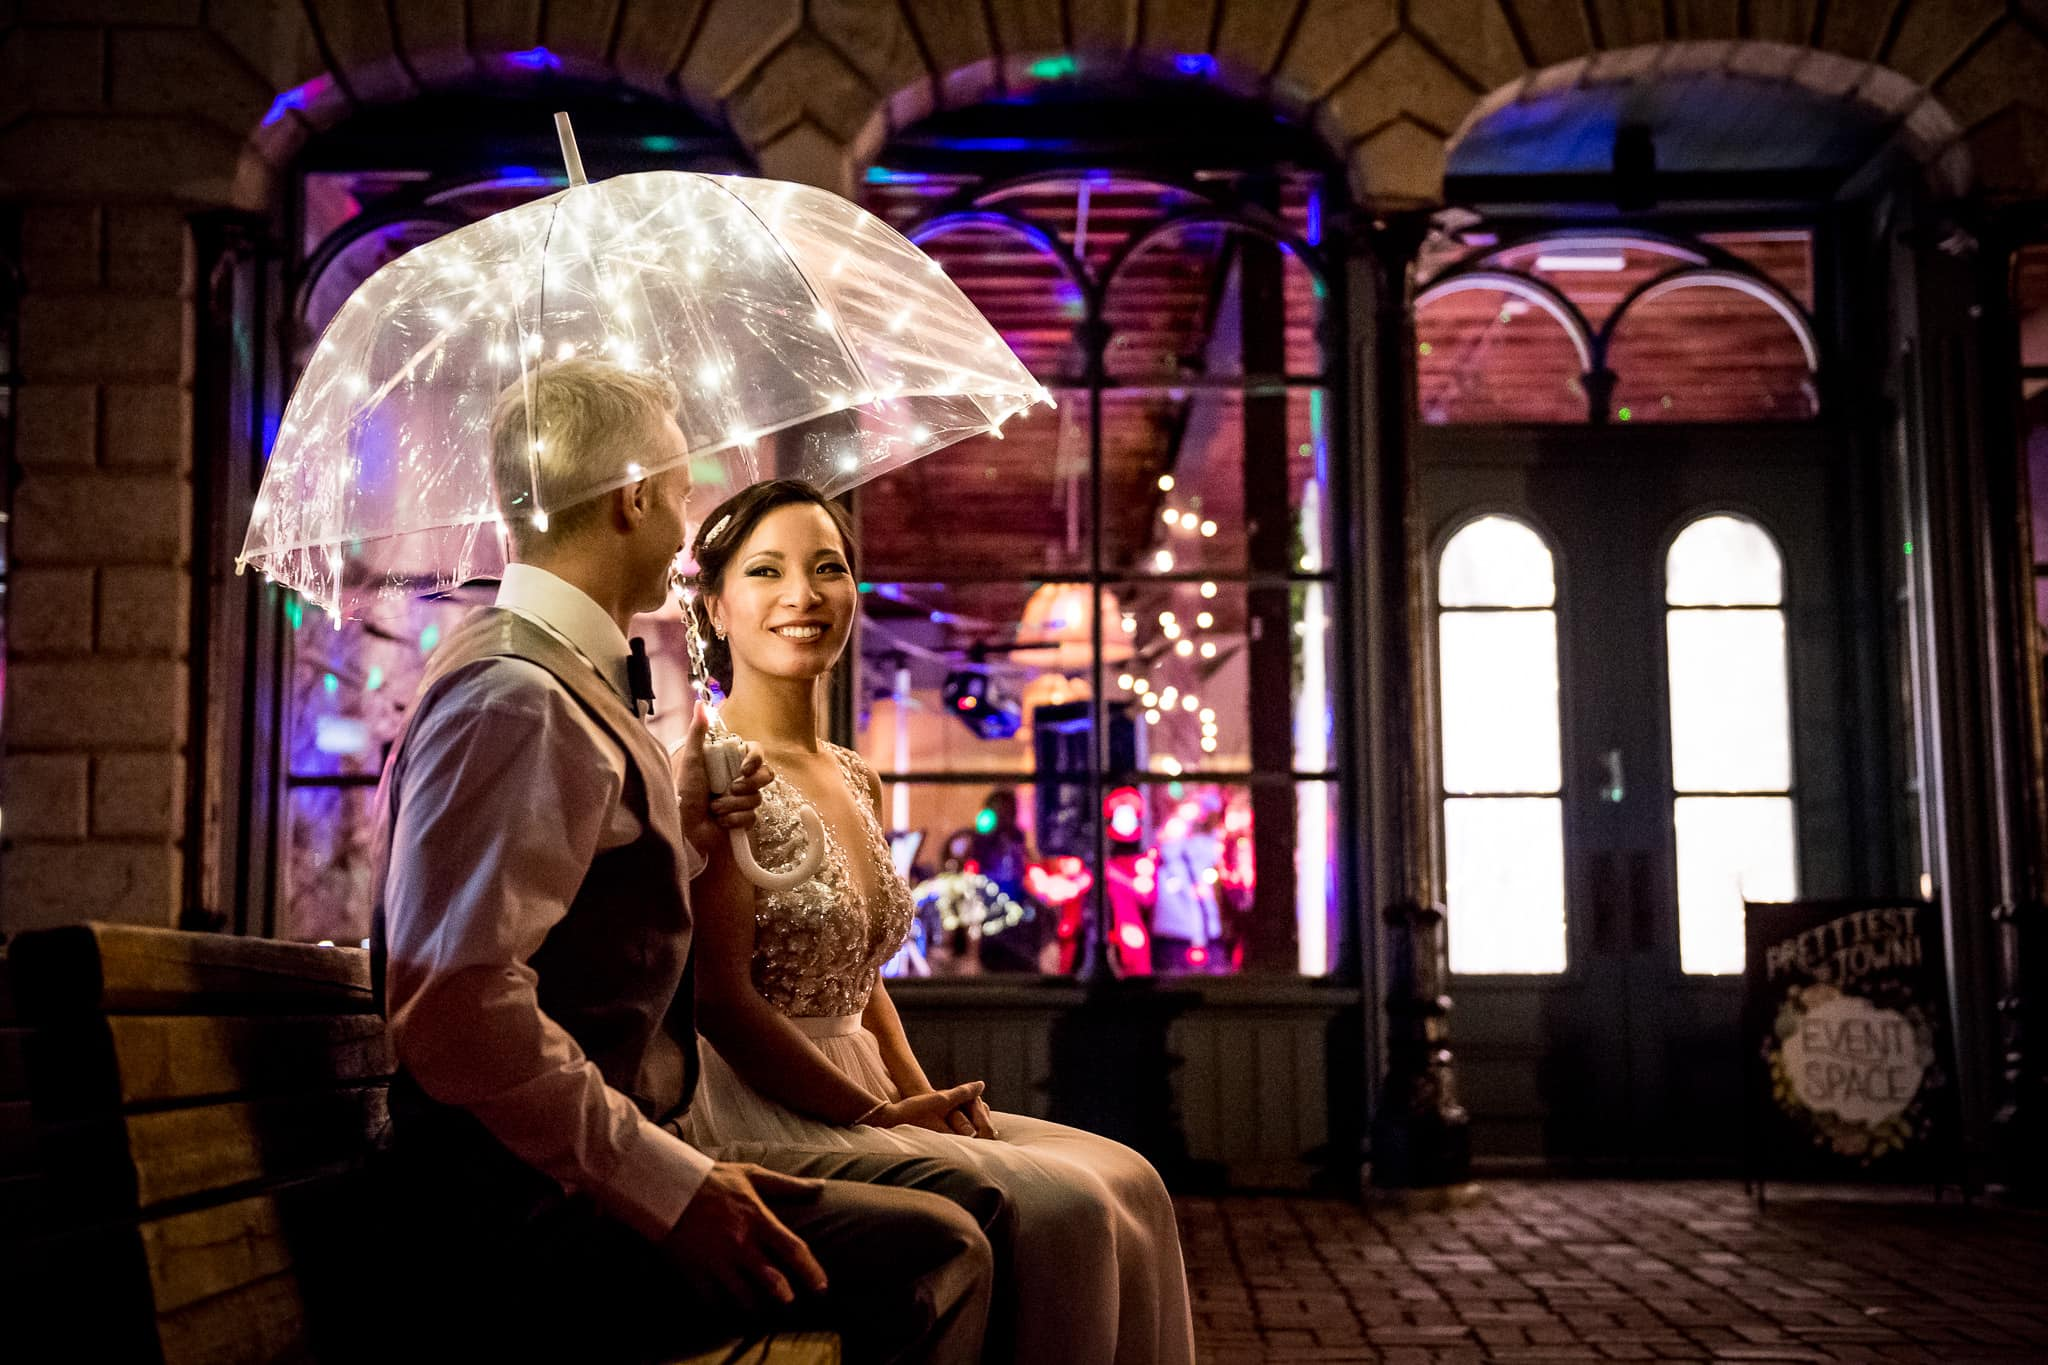 Colorful scene with the Bride and Groom sitting on a bench underneath a lit up umbrella just outside of Aster Cafe